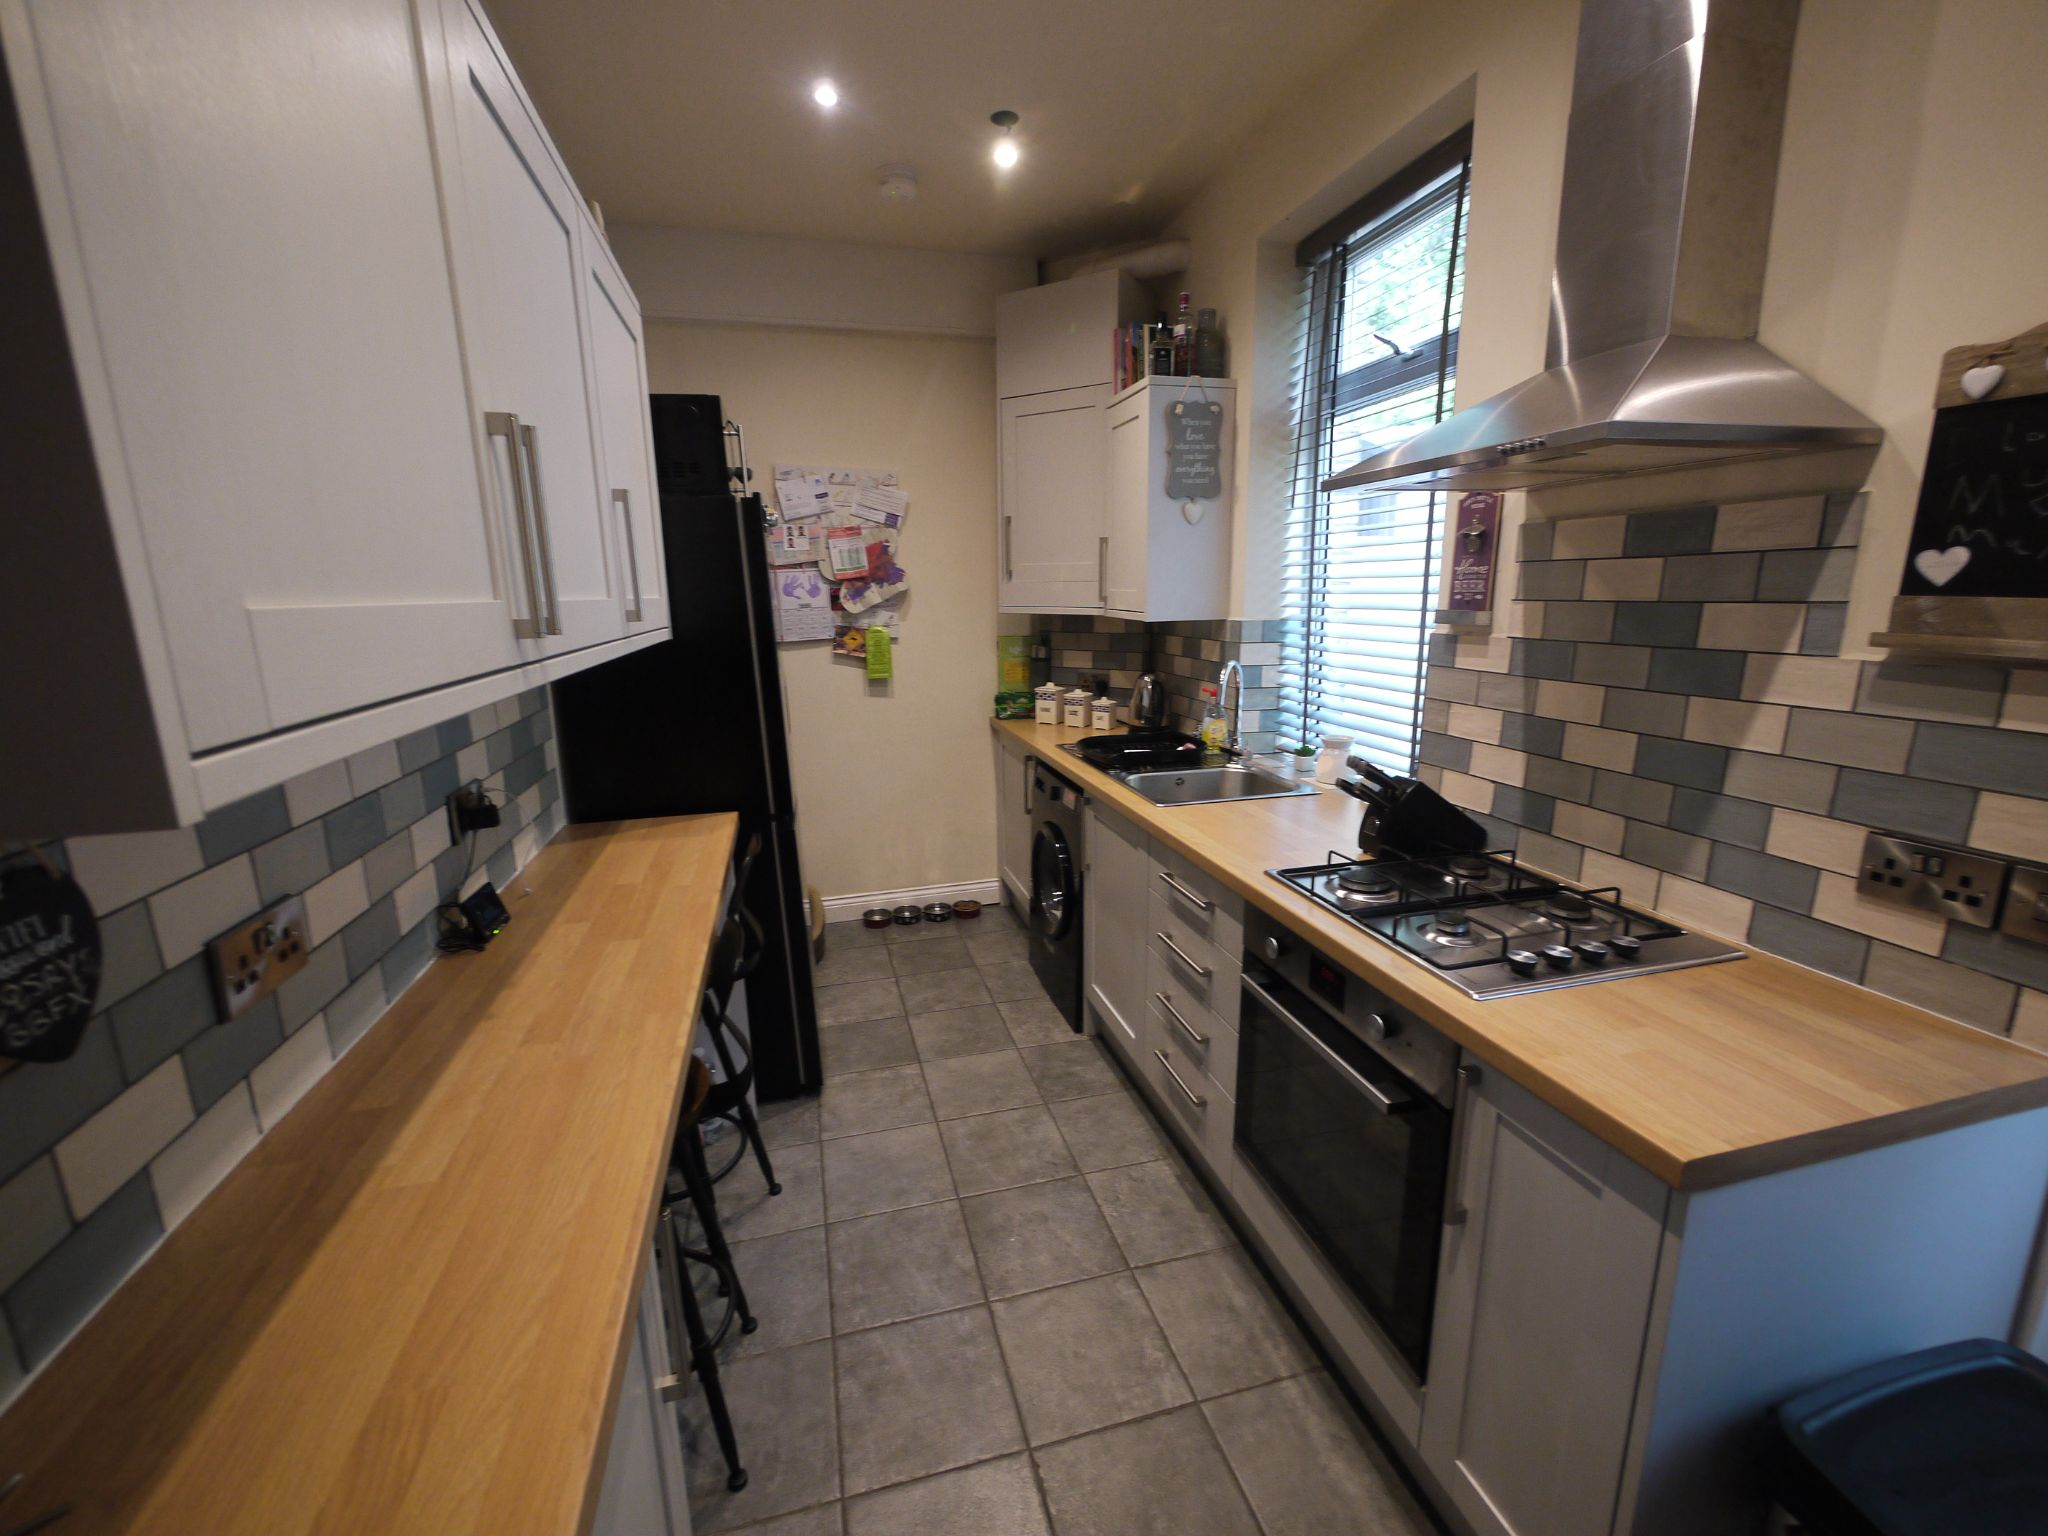 2 bedroom mid terraced house SSTC in Brighouse - Kitchen 2.